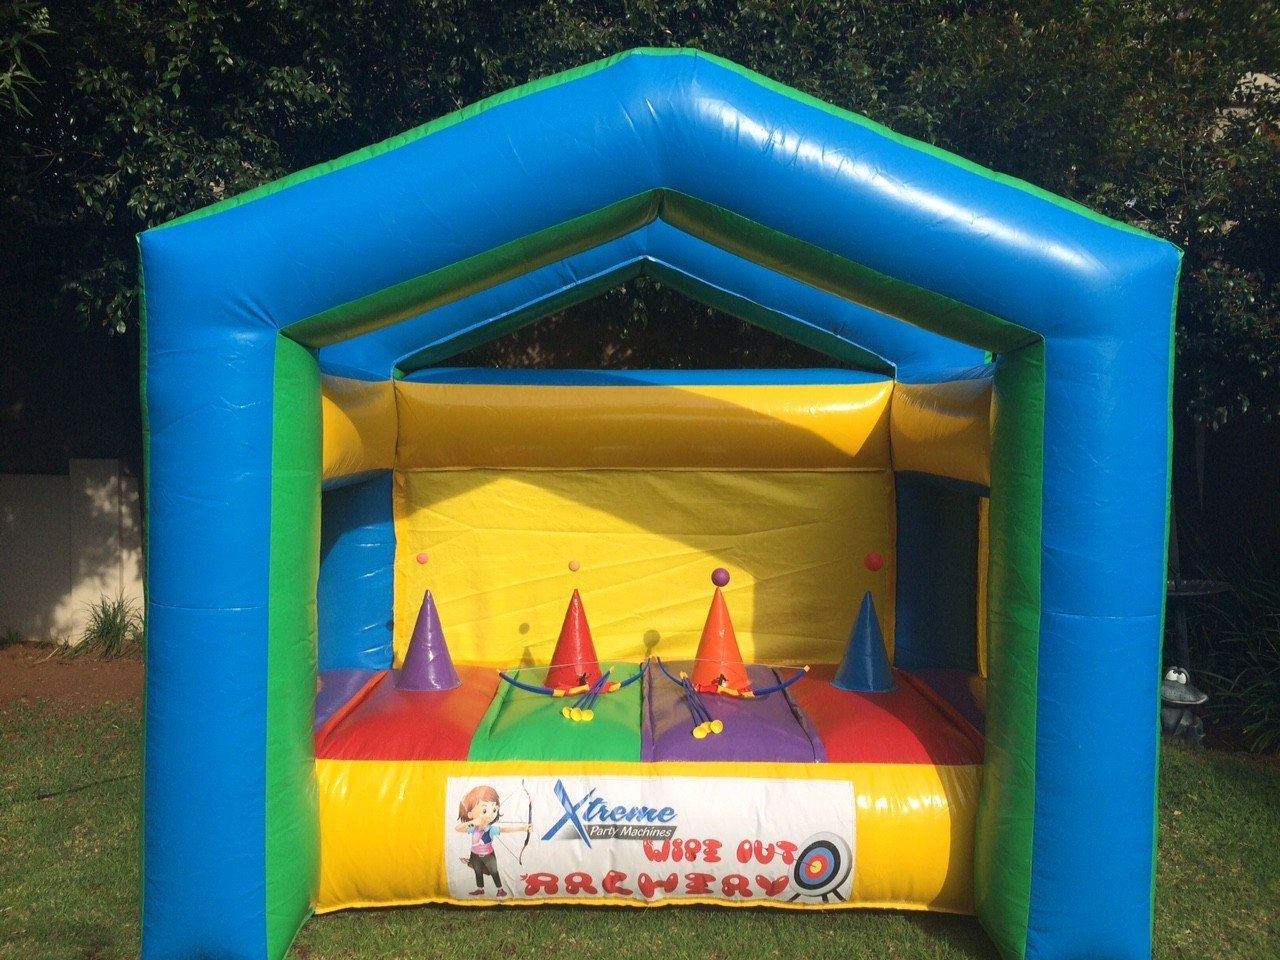 The Sharpest Rides >> Inflatables | Jumping Castles | Party Planner | Foam Parties